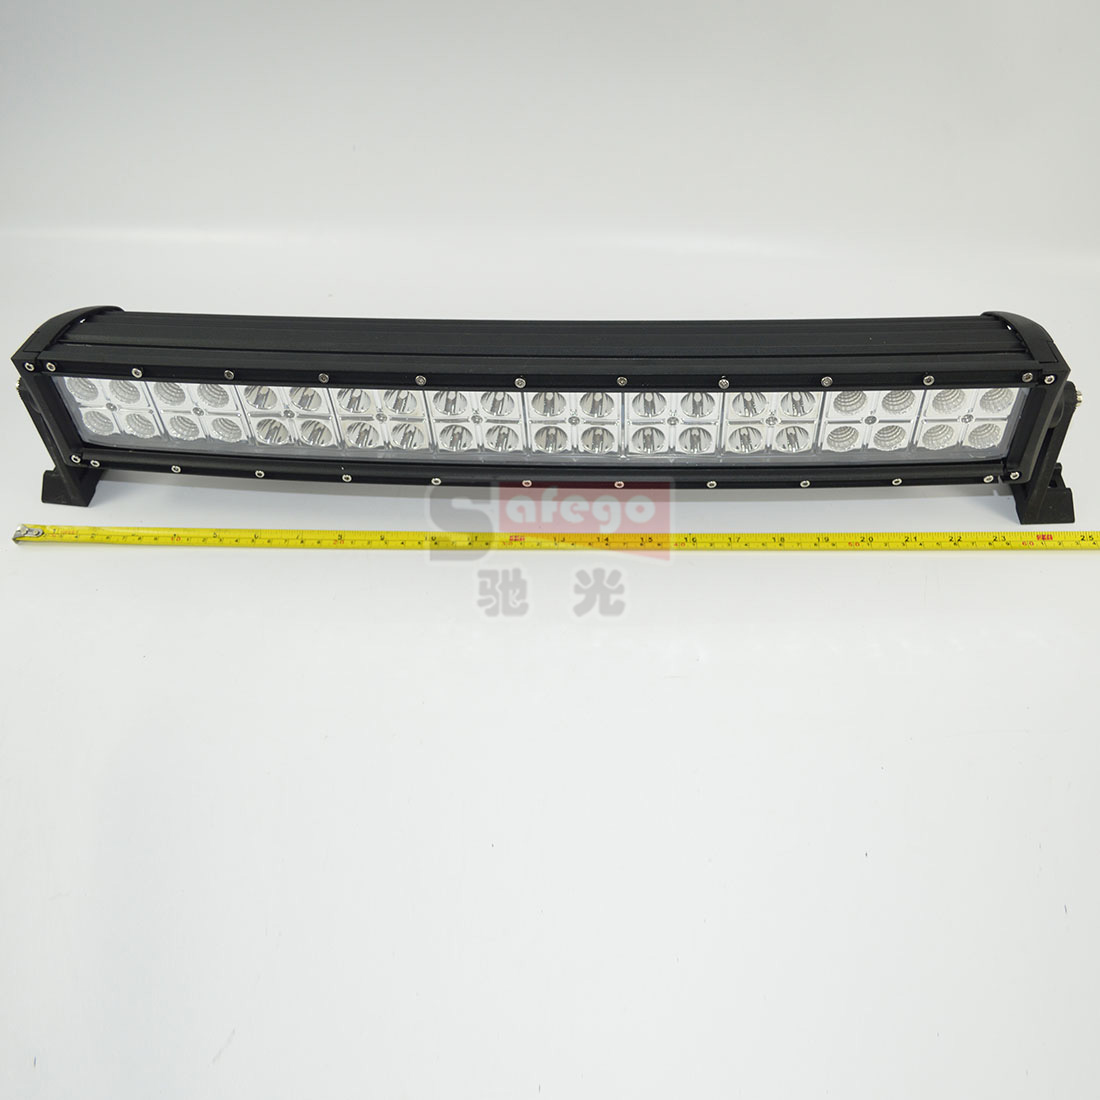 120W curved 23inch led light bar OffRoad  Driving Work lights  bar for Truck off road Boat 4X4 ATV Spot Flood Combo Fog Lamp 24v 9 90w led work light 12v 24v led drive light spot combo led lens motorcycle boat atv 4wd offroad fog lamp led worklight vs 120w